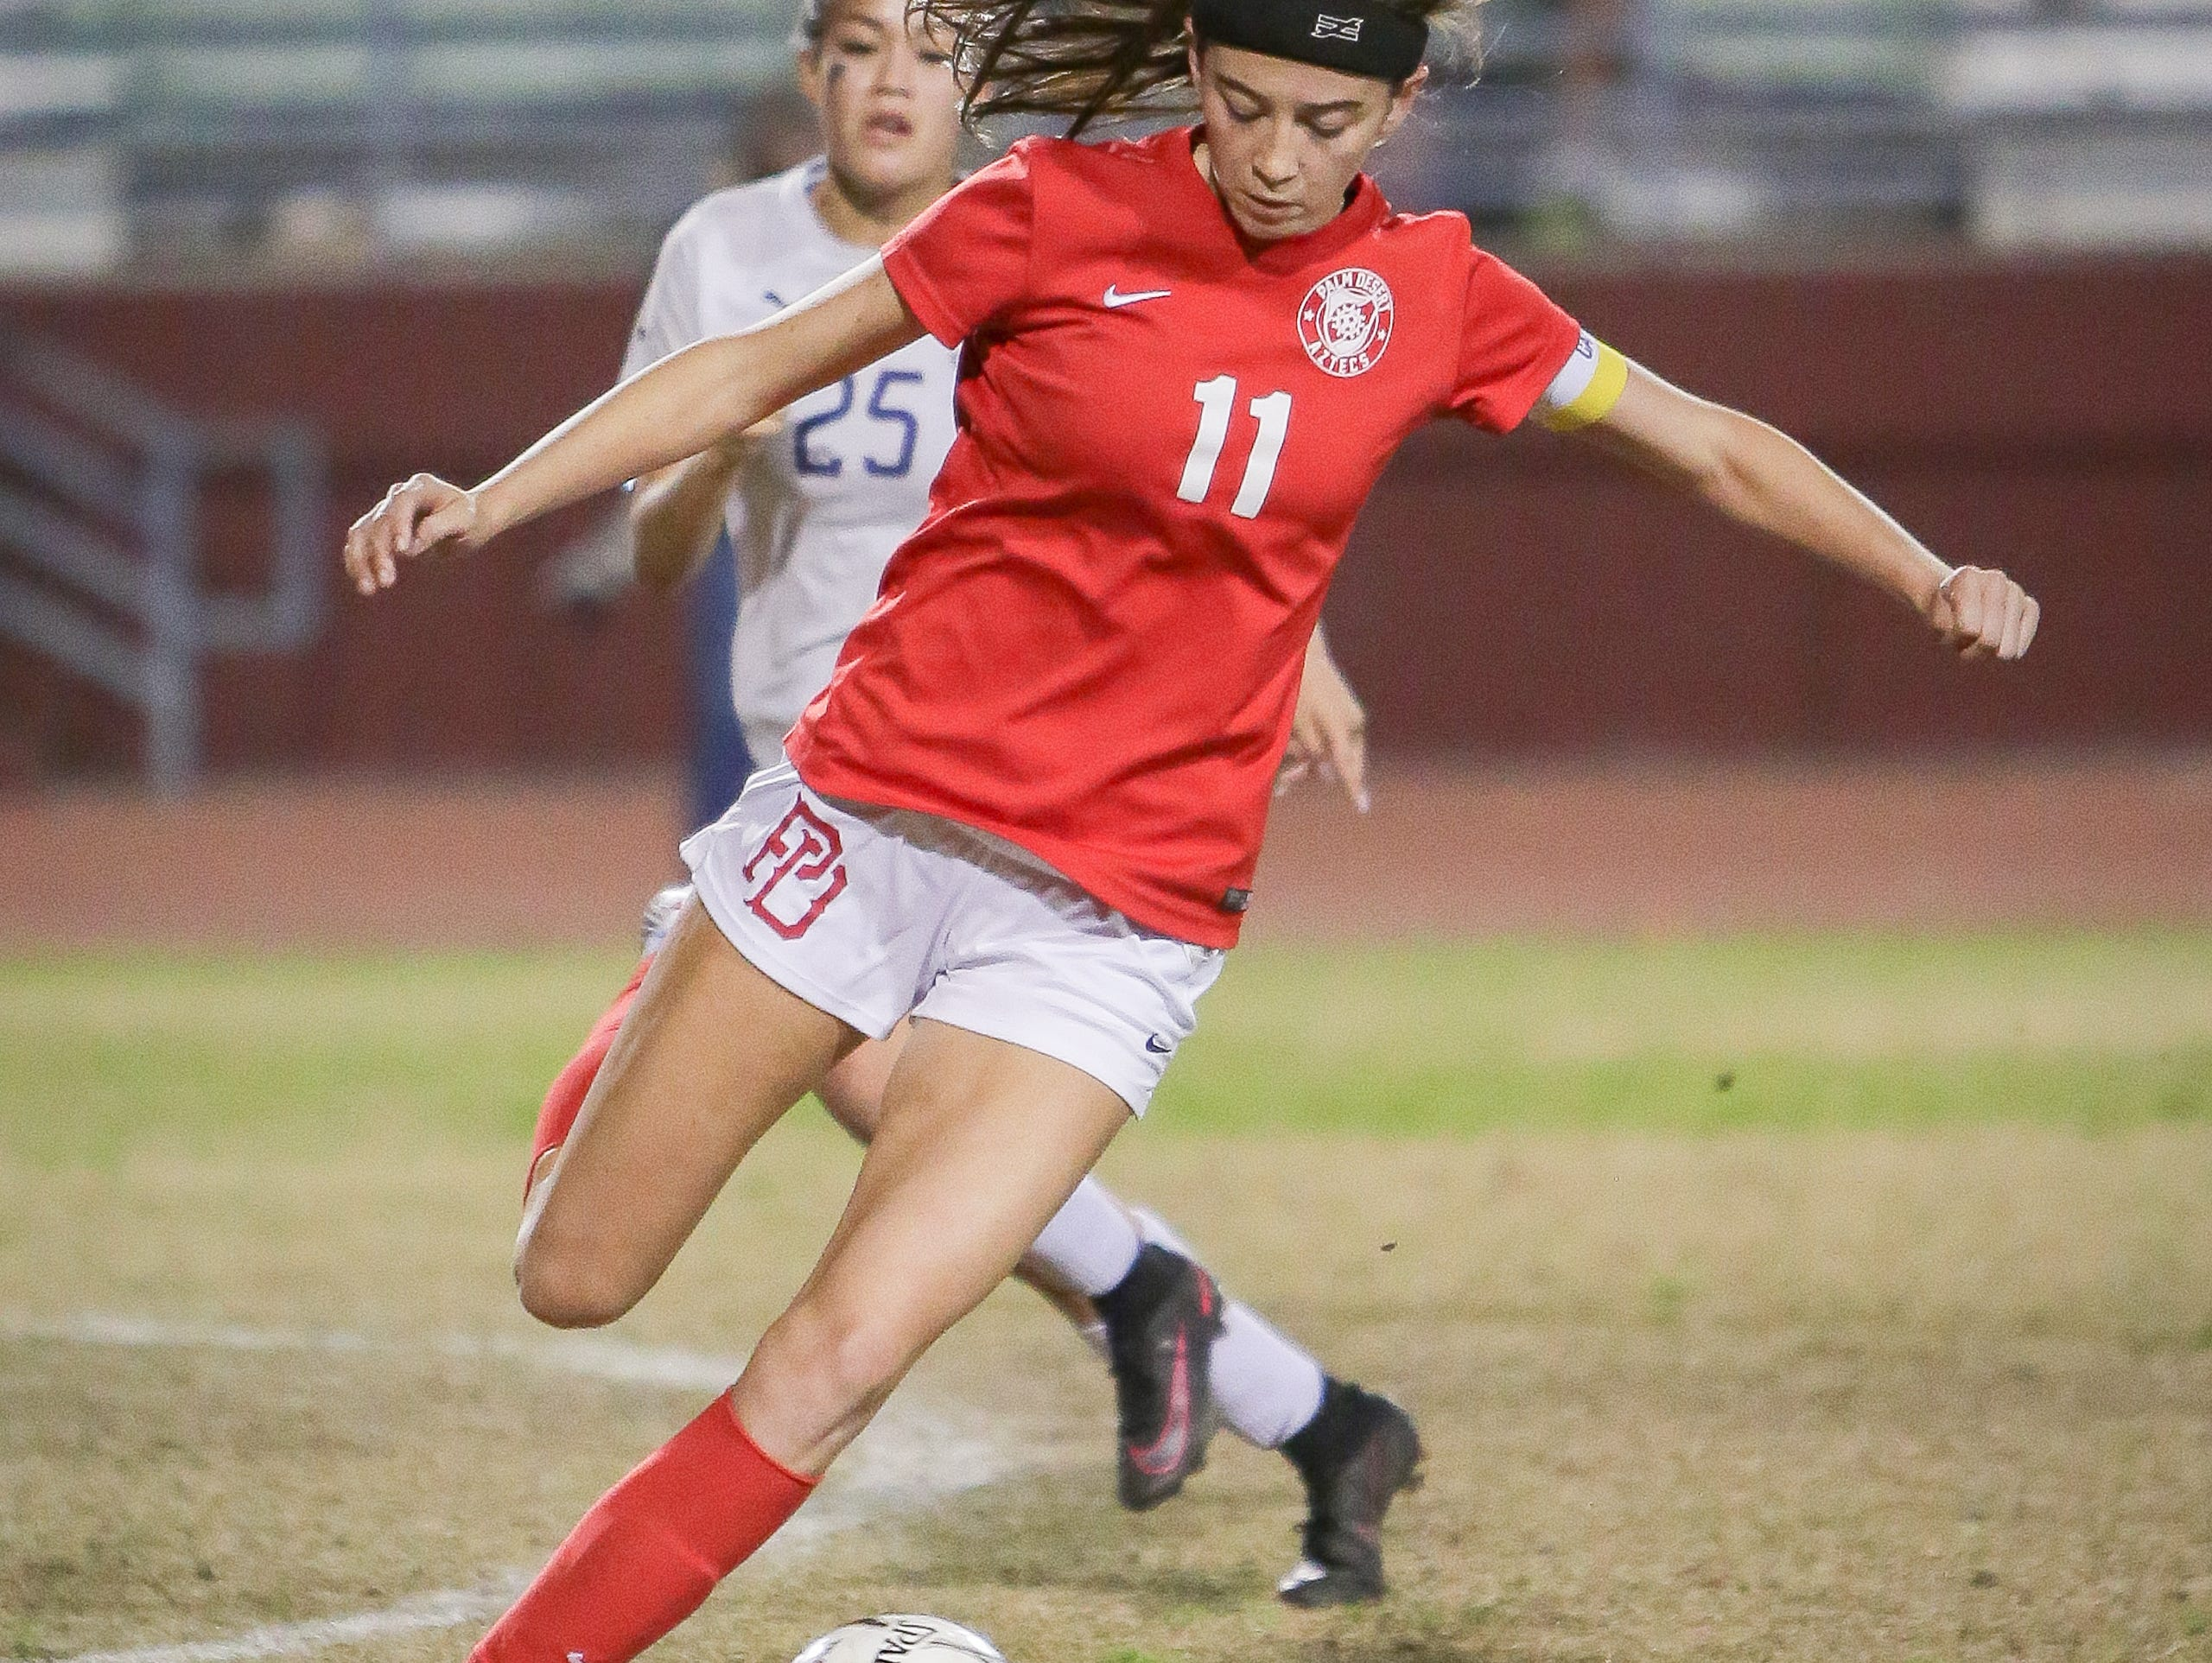 Jane Jordan finds the ball in the midfield. The La Quinta Blackhawks girls soccer team won Monday's home conference game against rival school Palm Desert by a score of 4-0.